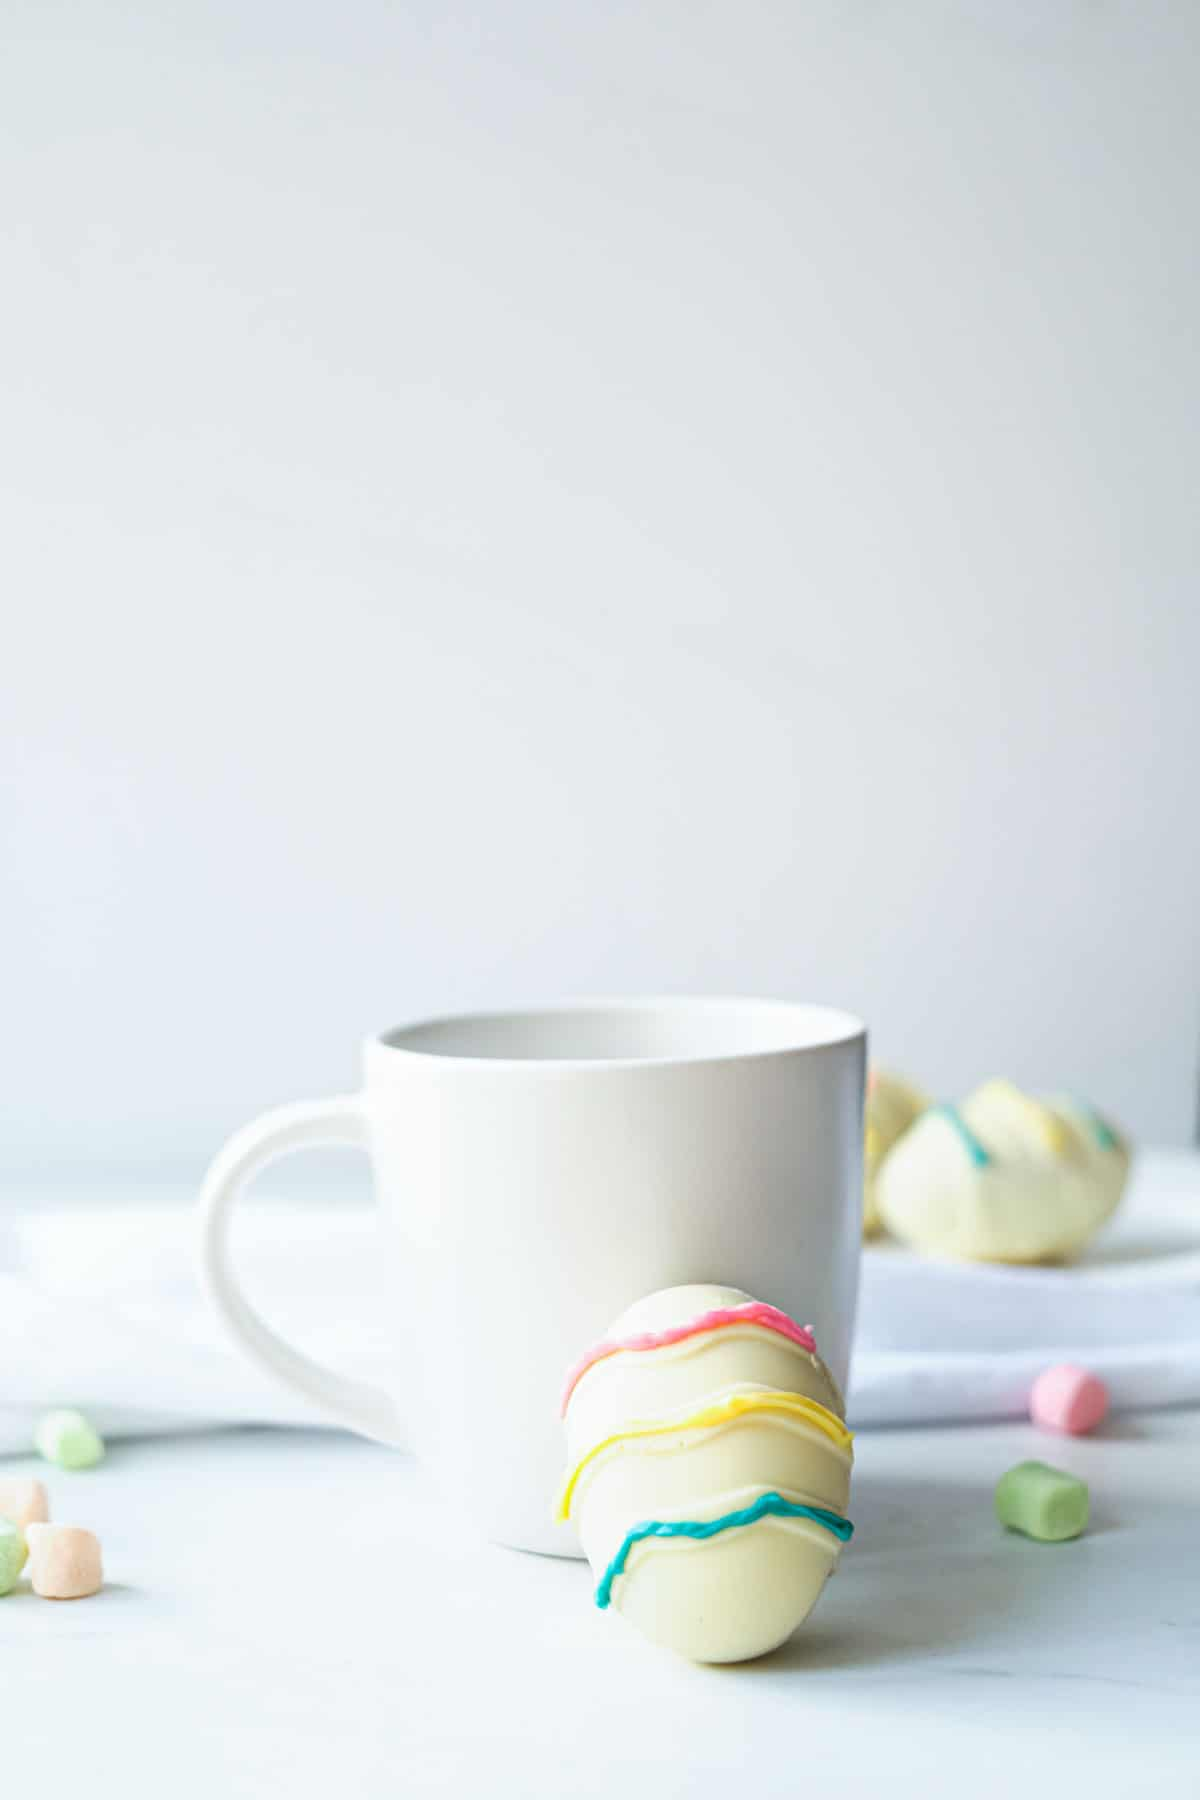 one Easter hot chocolate bomb leaning against a white mug